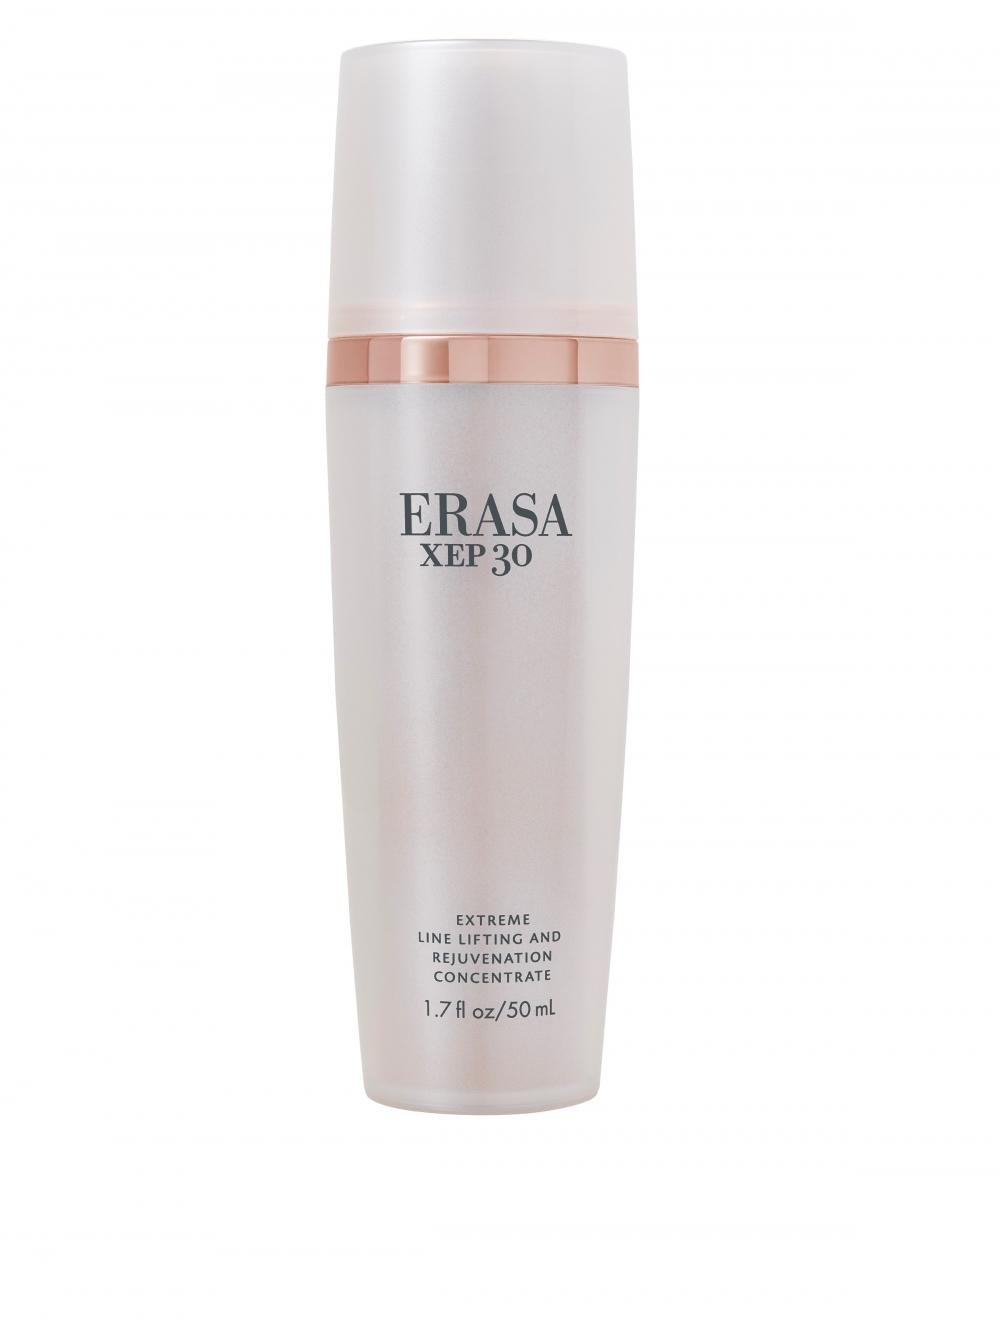 Erasa XEP-30 Wins Allure Beauty Award